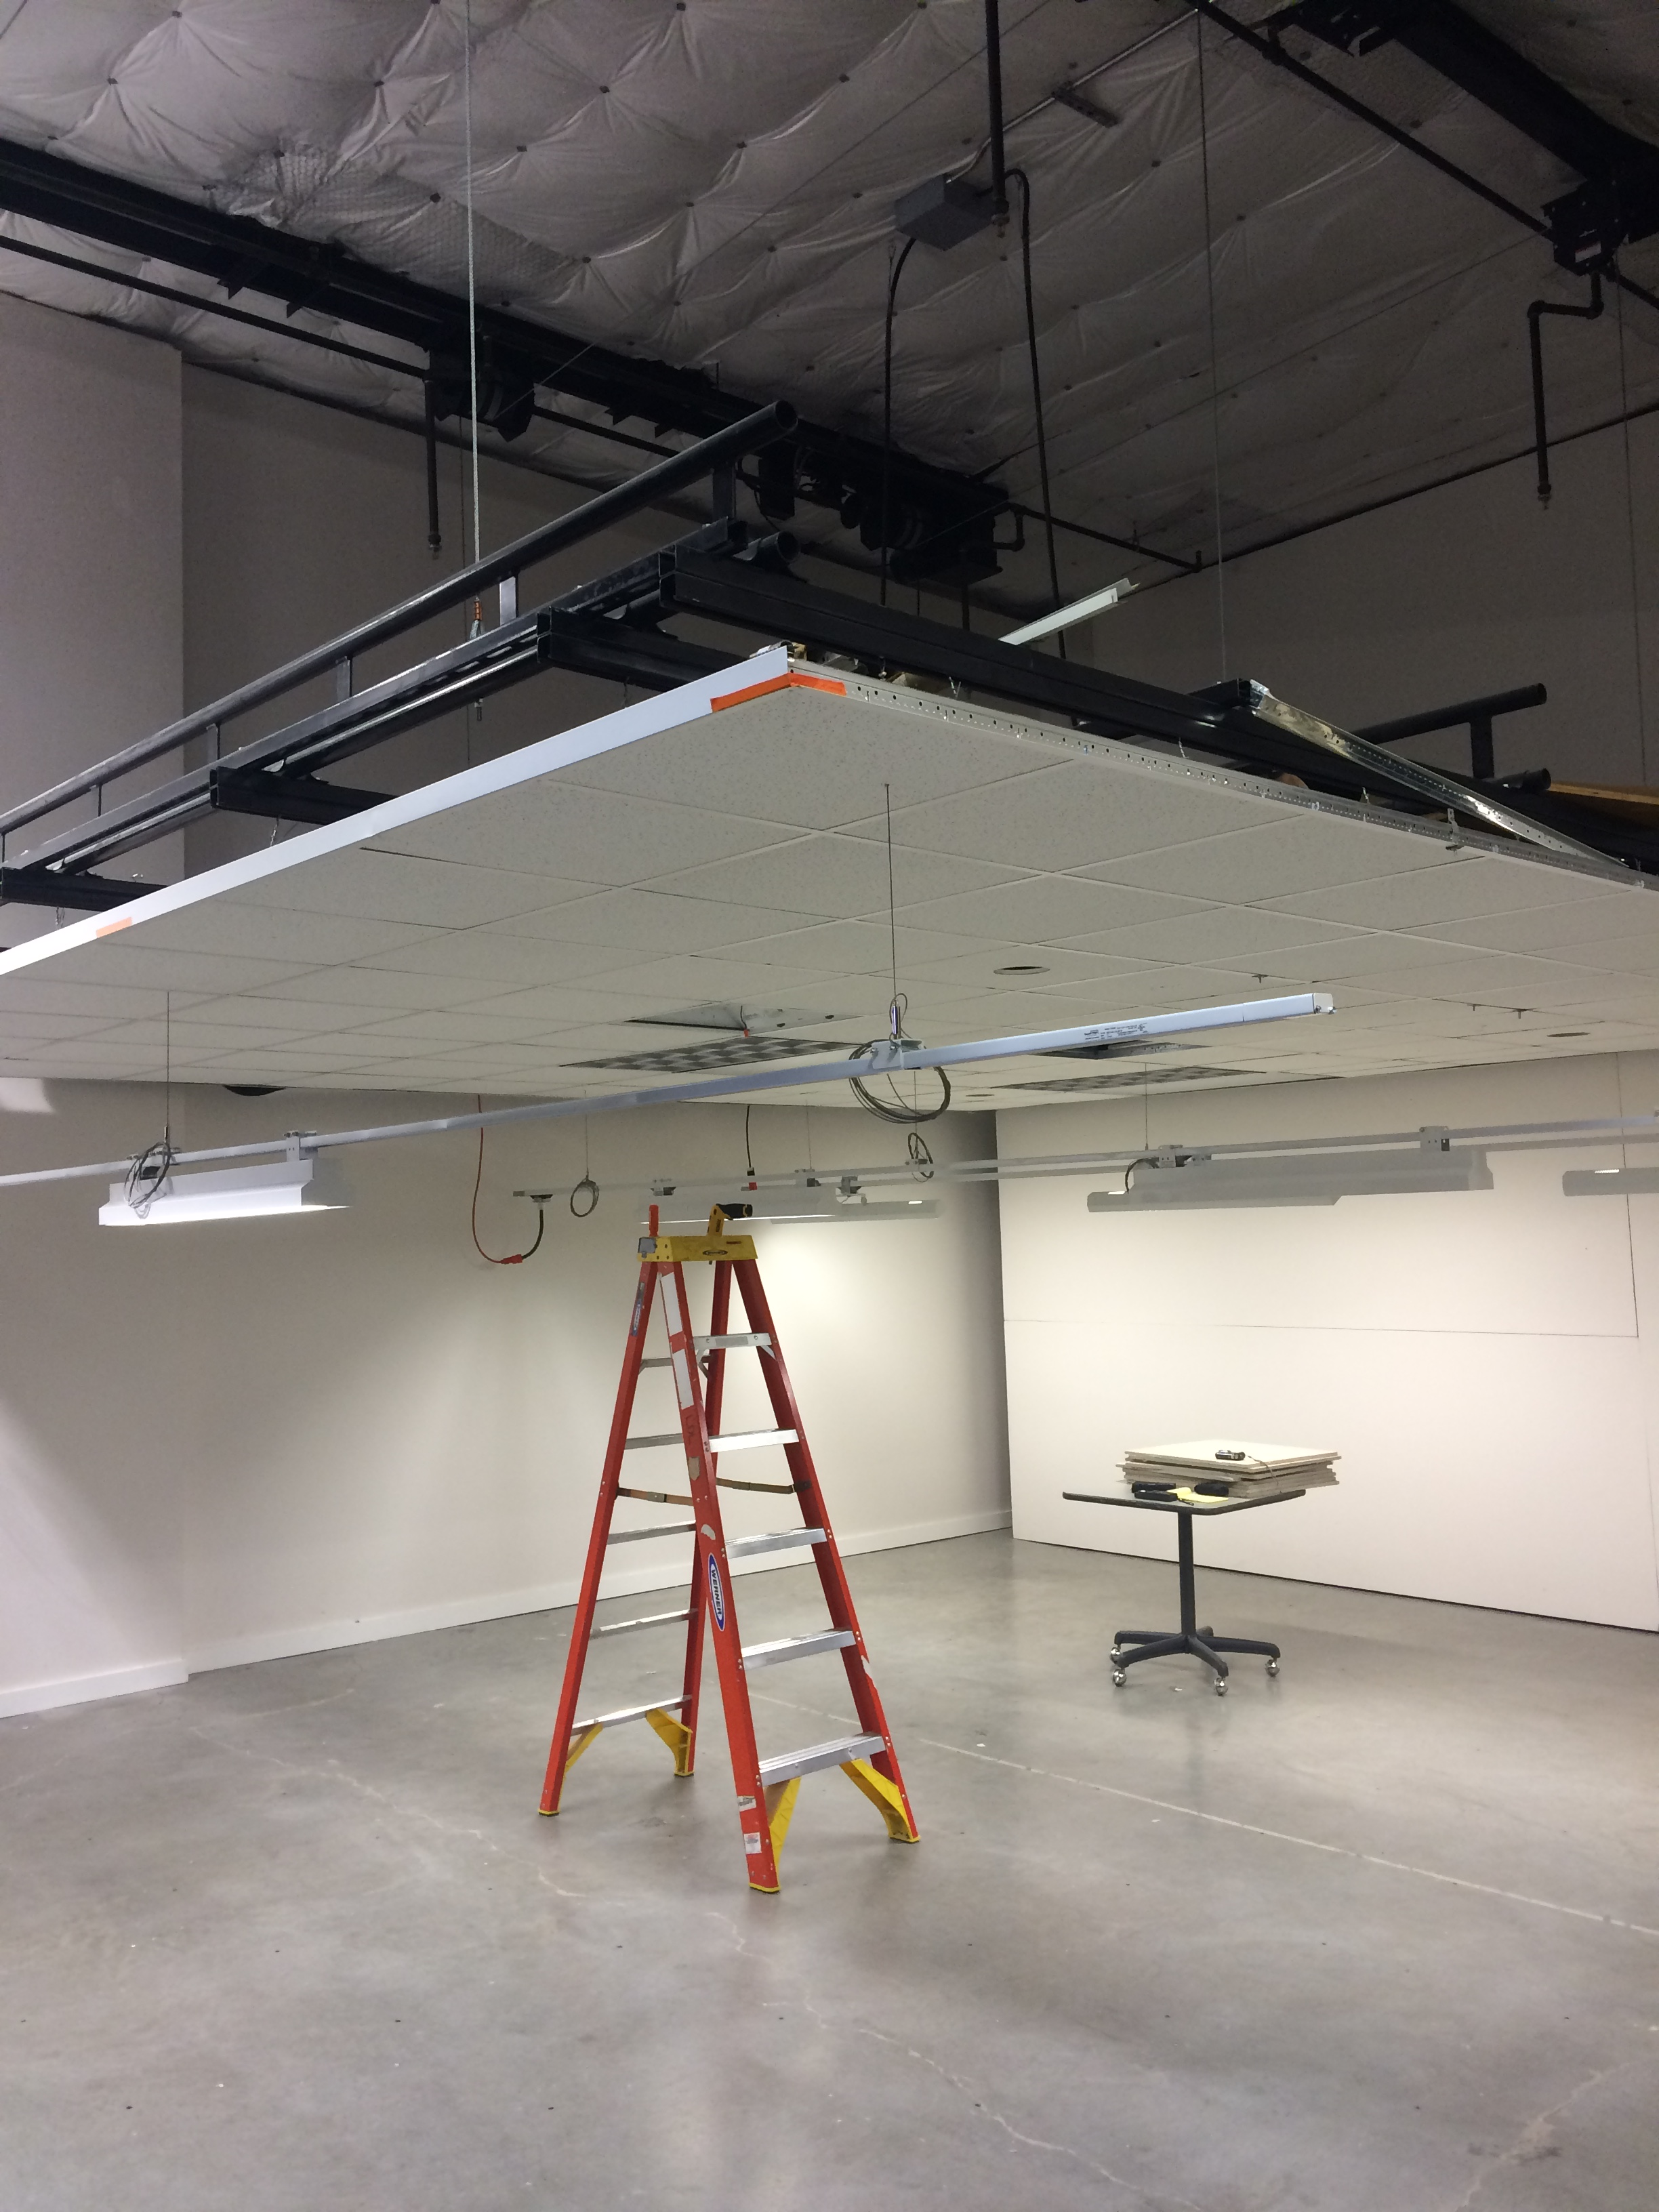 ... Washington Lighting Design Lab Retractable Ceiling in Seattle ... & Gallery | Lighting Design Lab